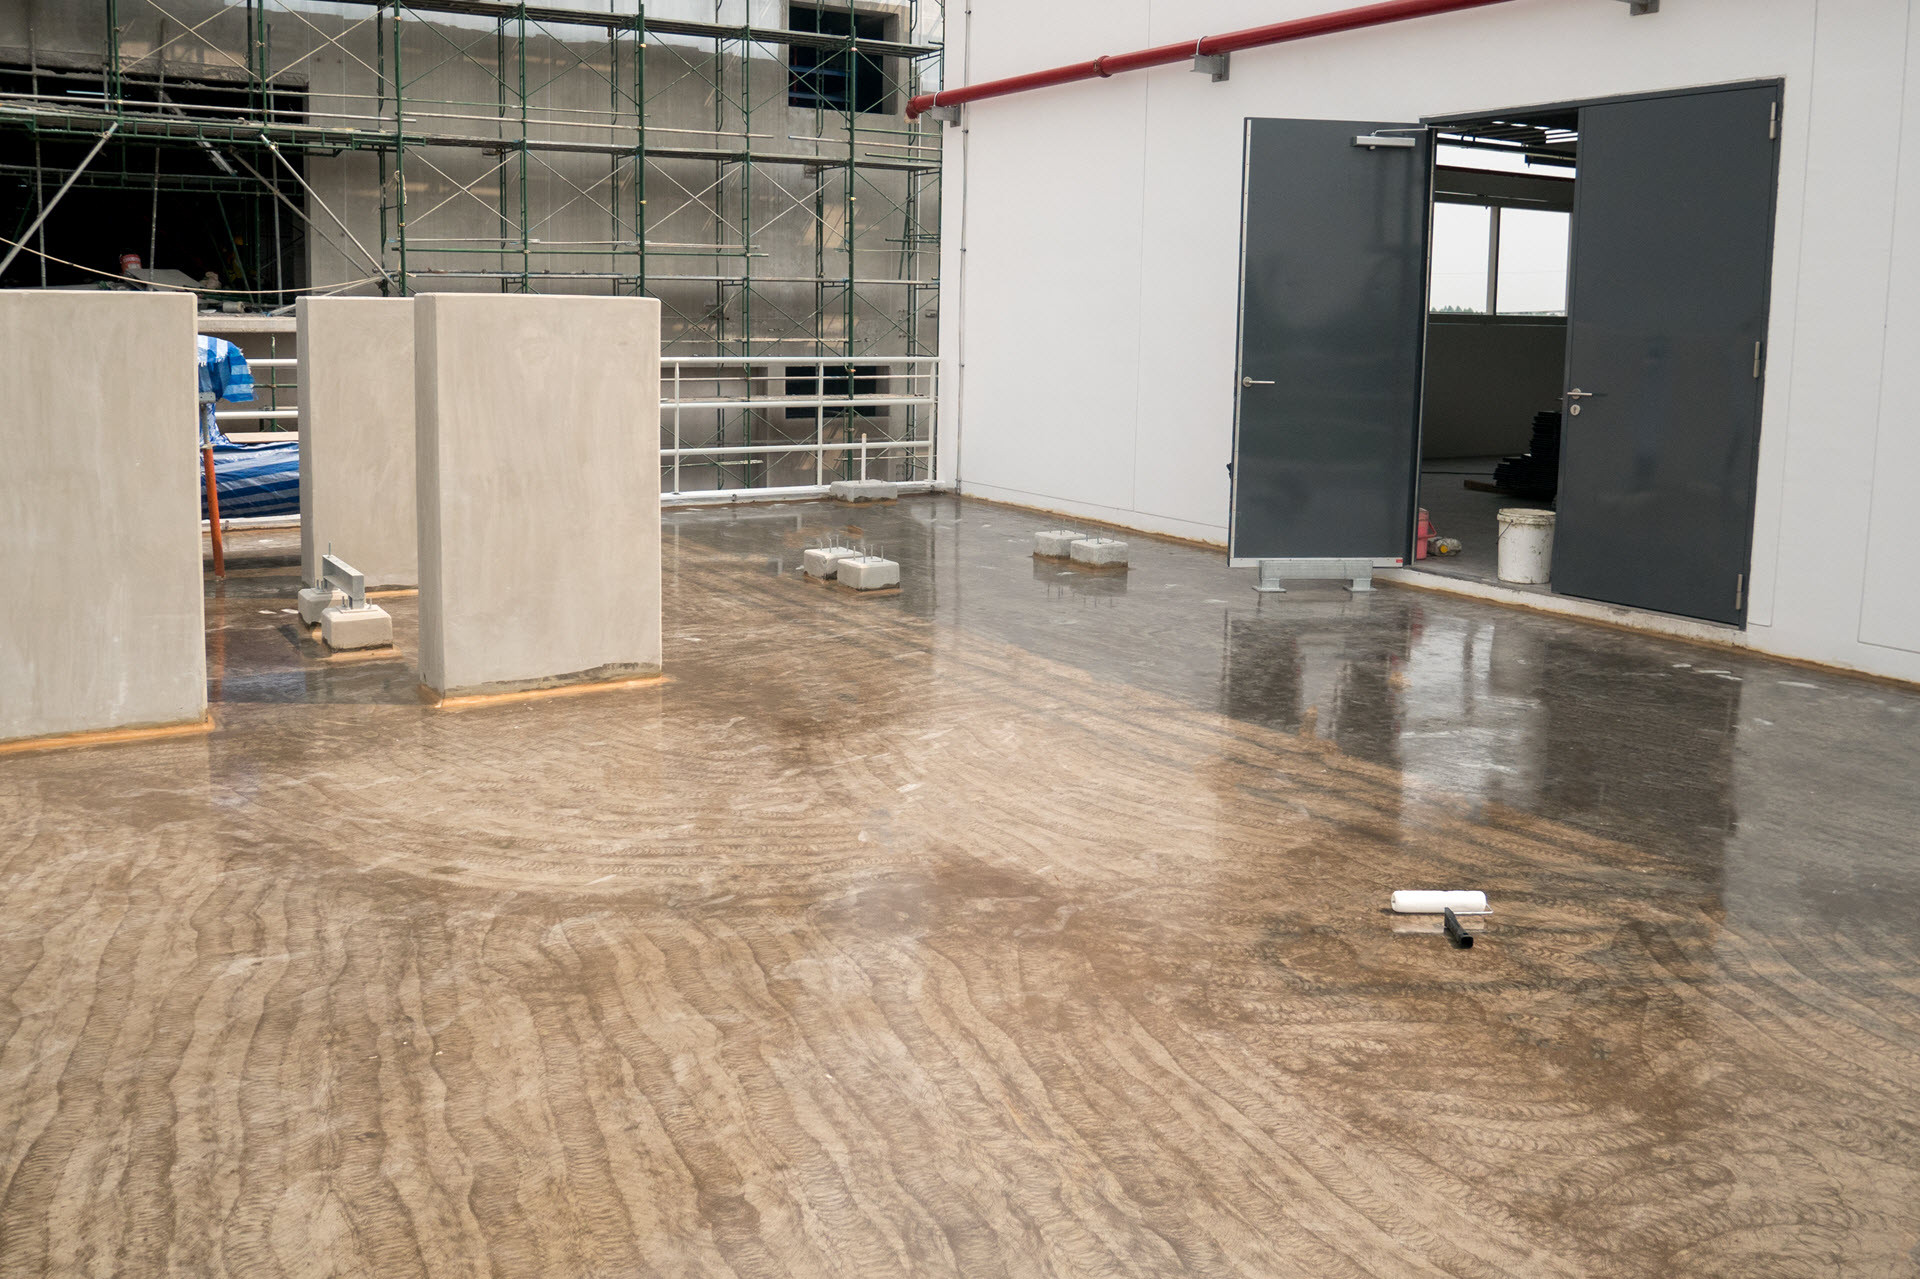 How Does Epoxy Flooring Change Perception of Floors?